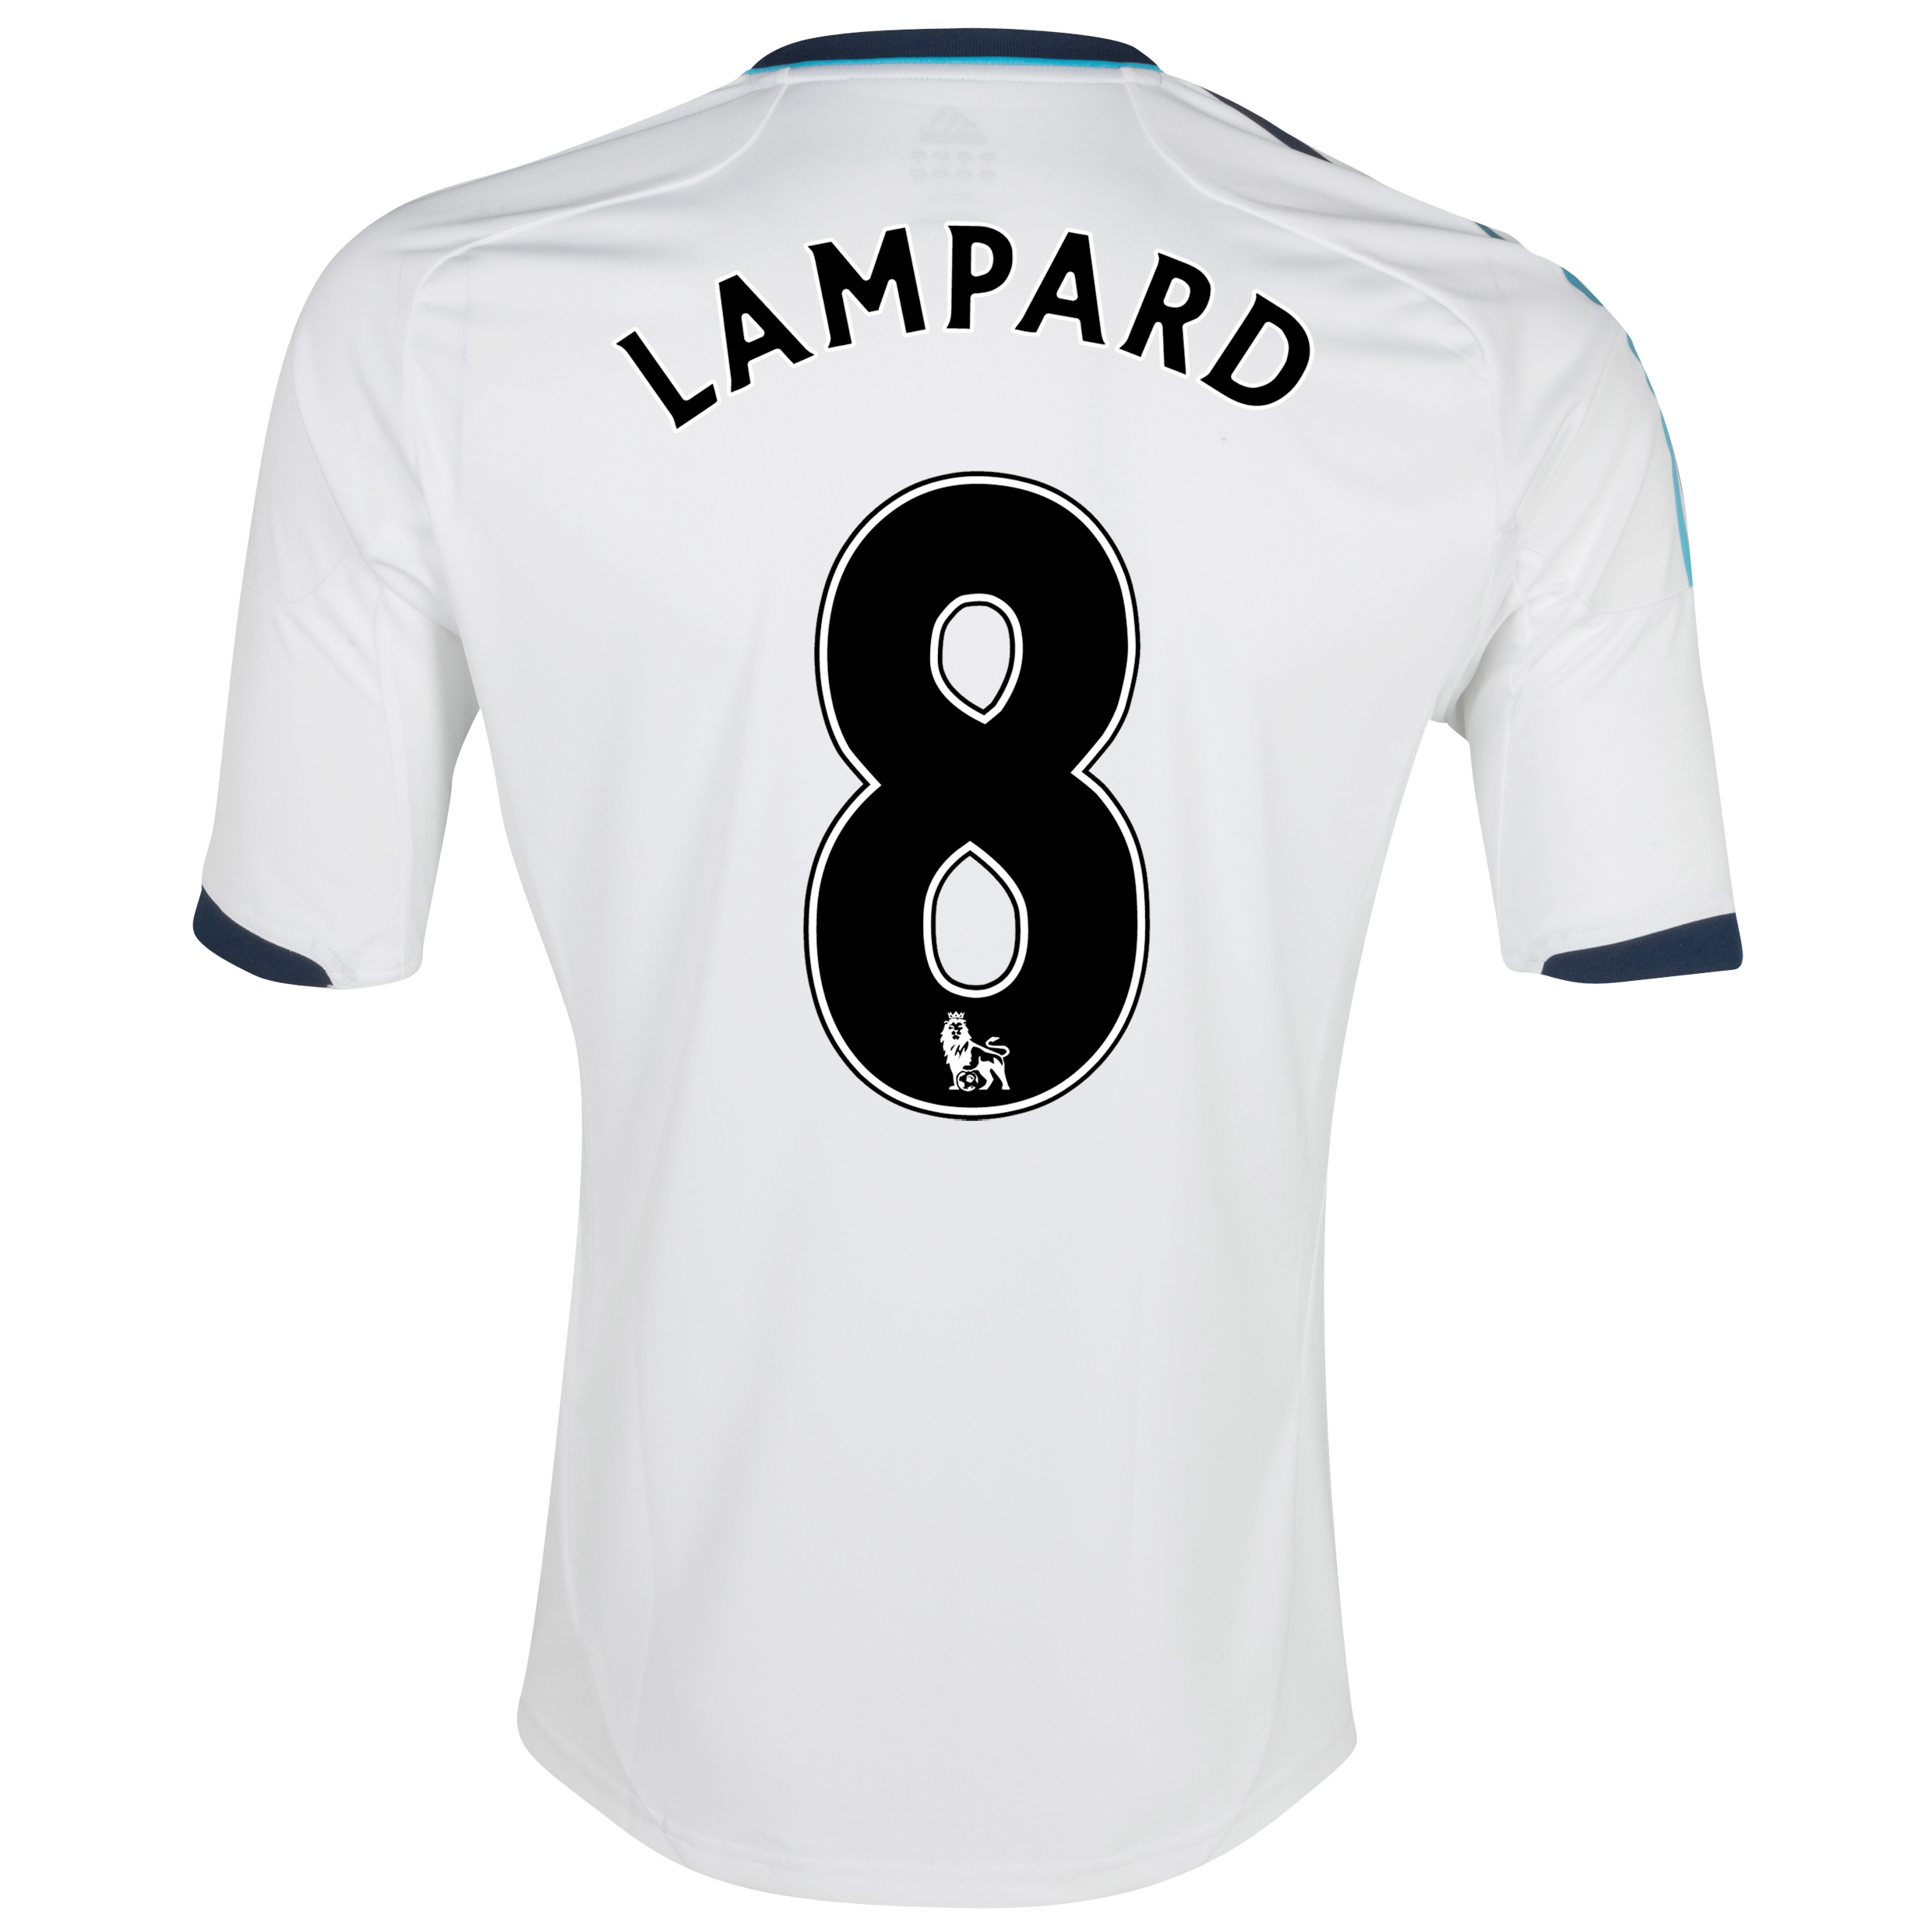 Chelsea Away Shirt 2012/13 with Lampard 8 printing